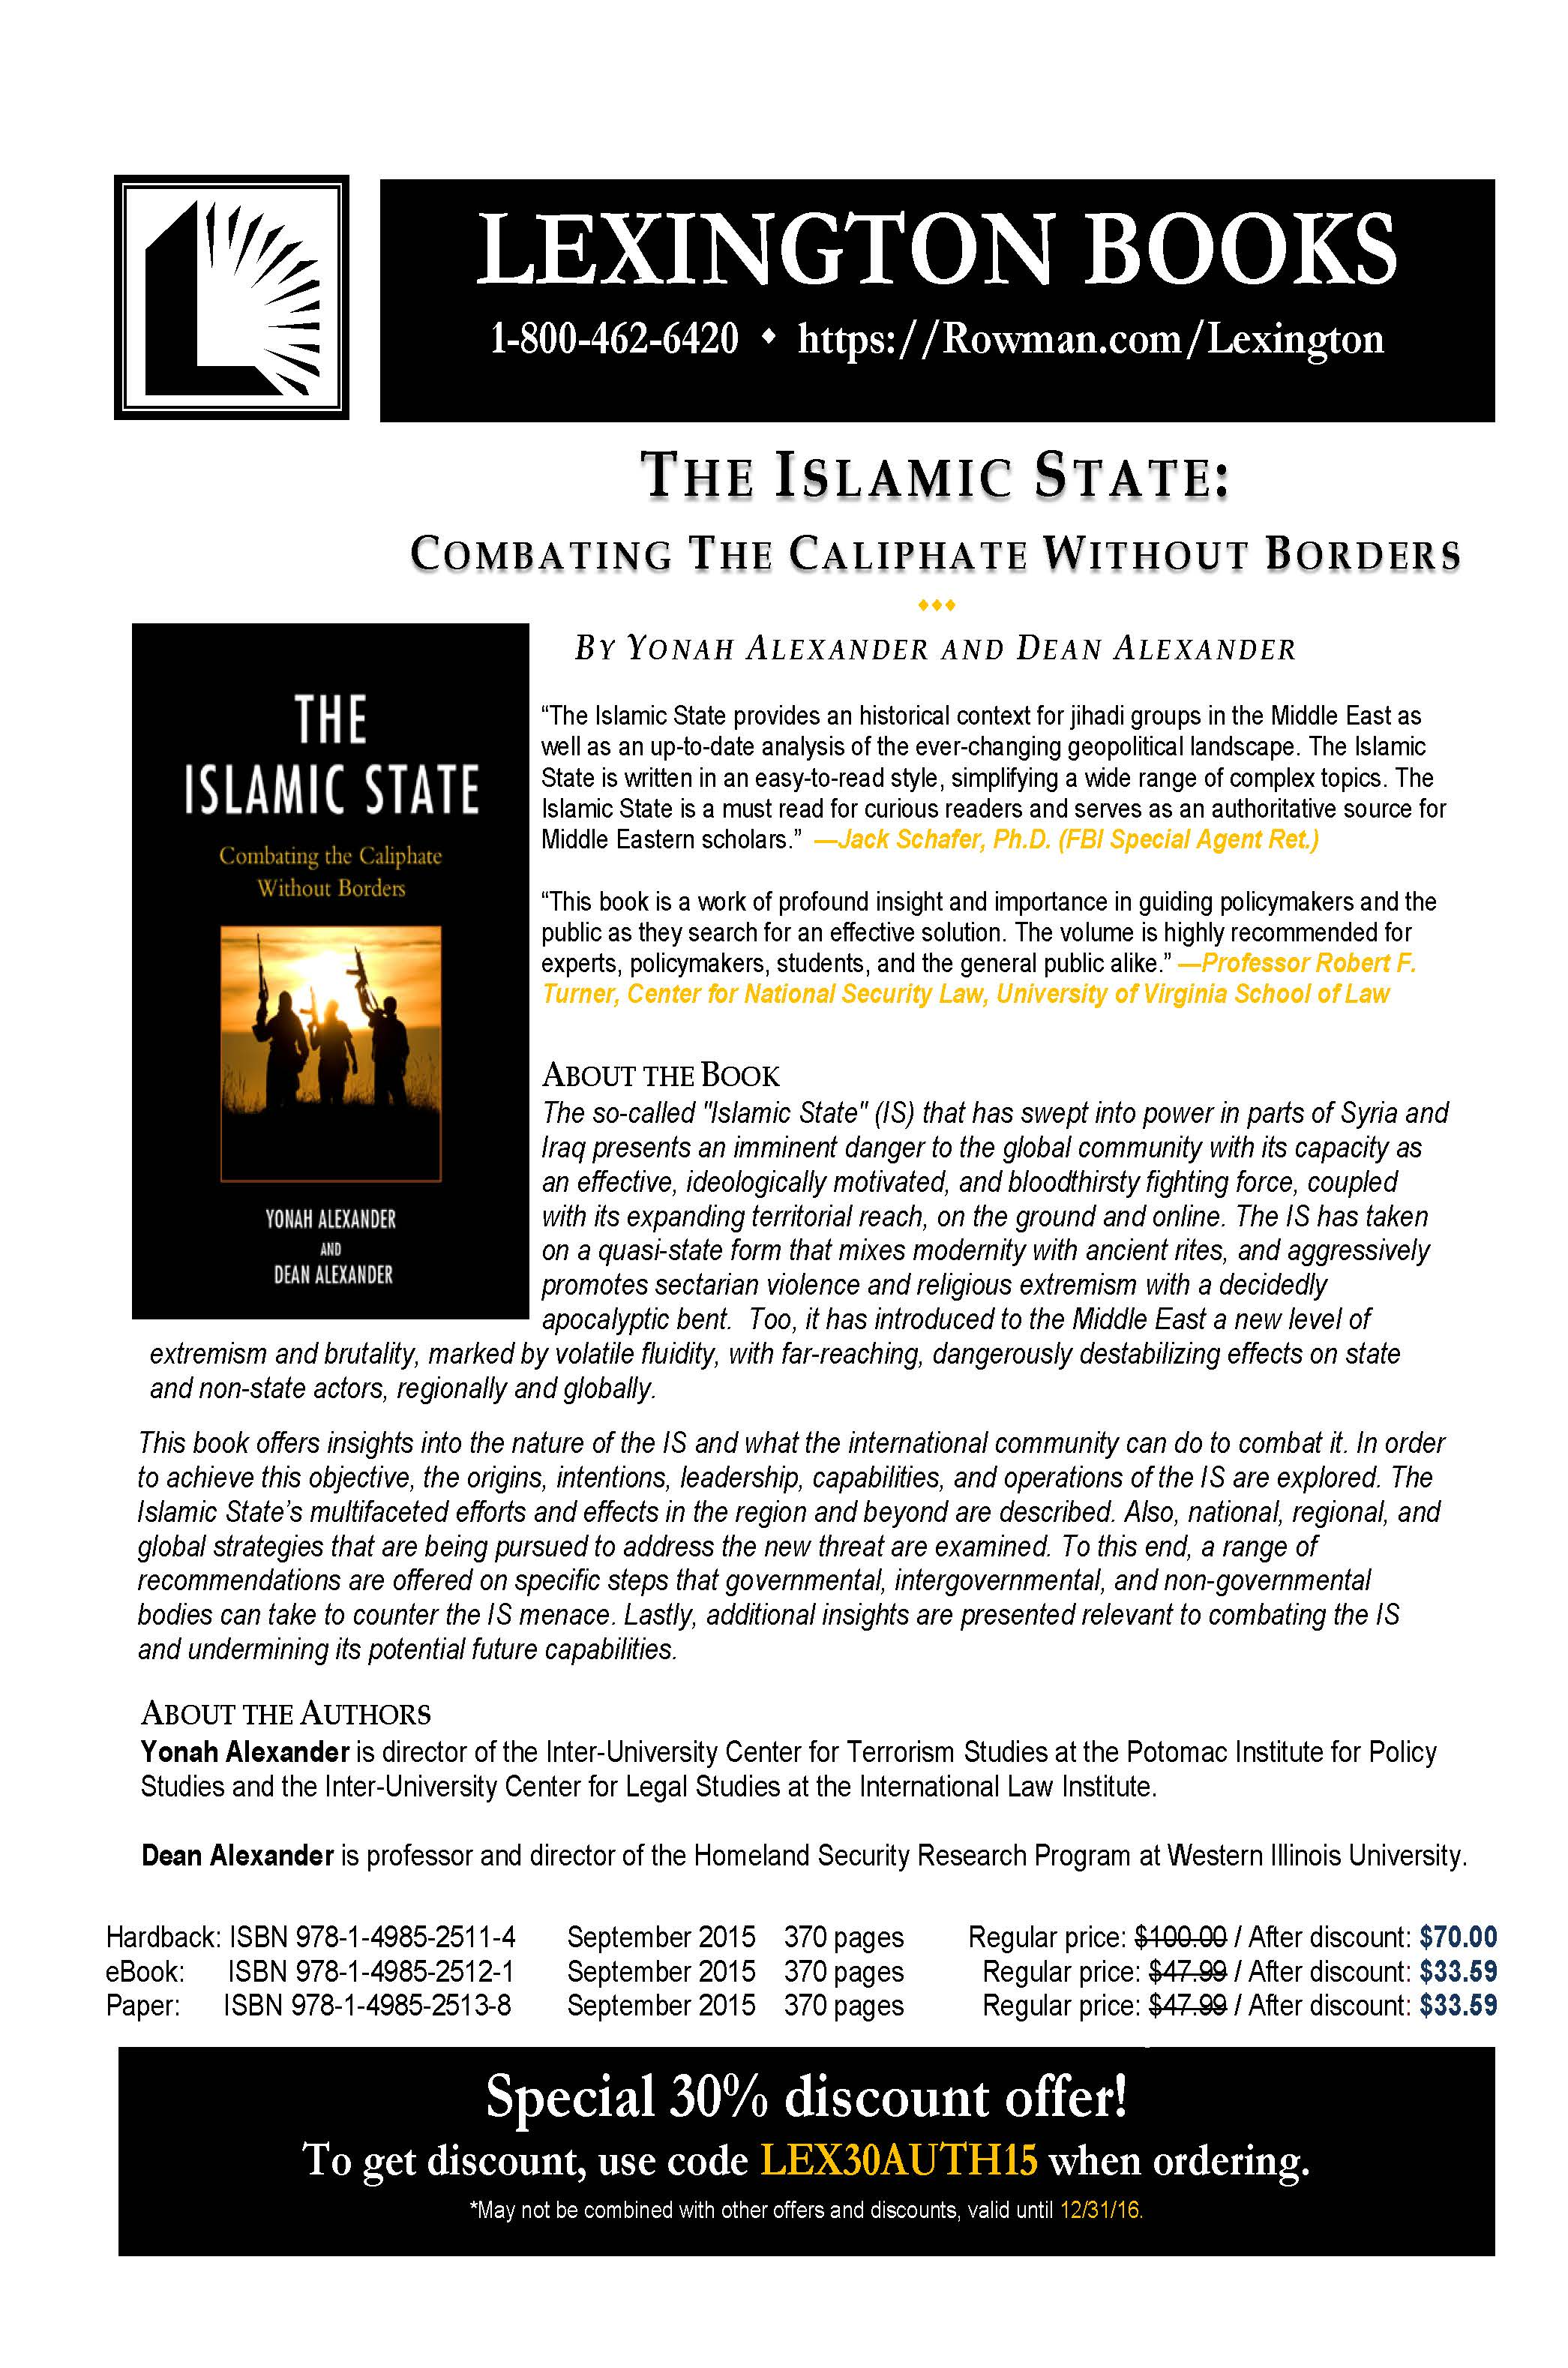 IslamicStateFlyer Page 1